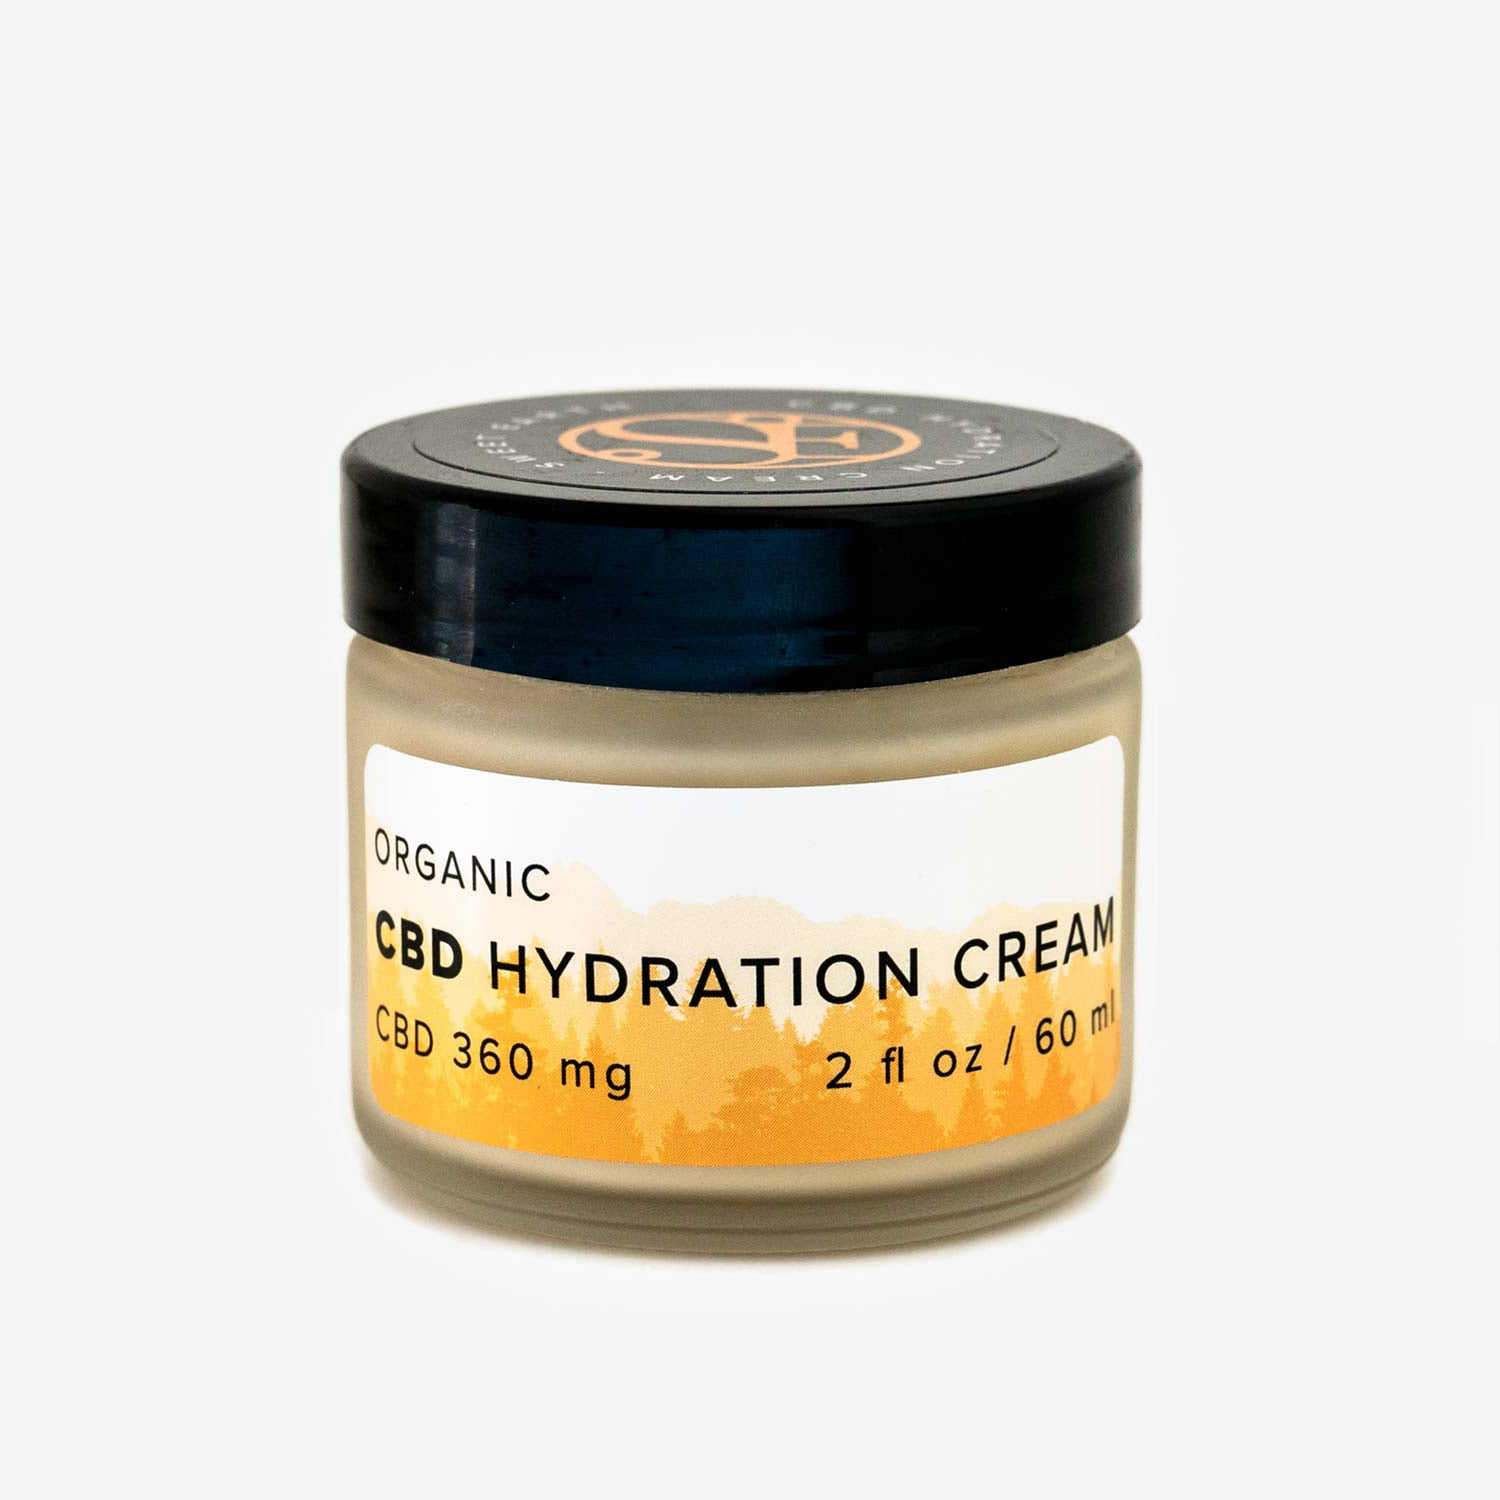 Organic CBD Hydration Cream